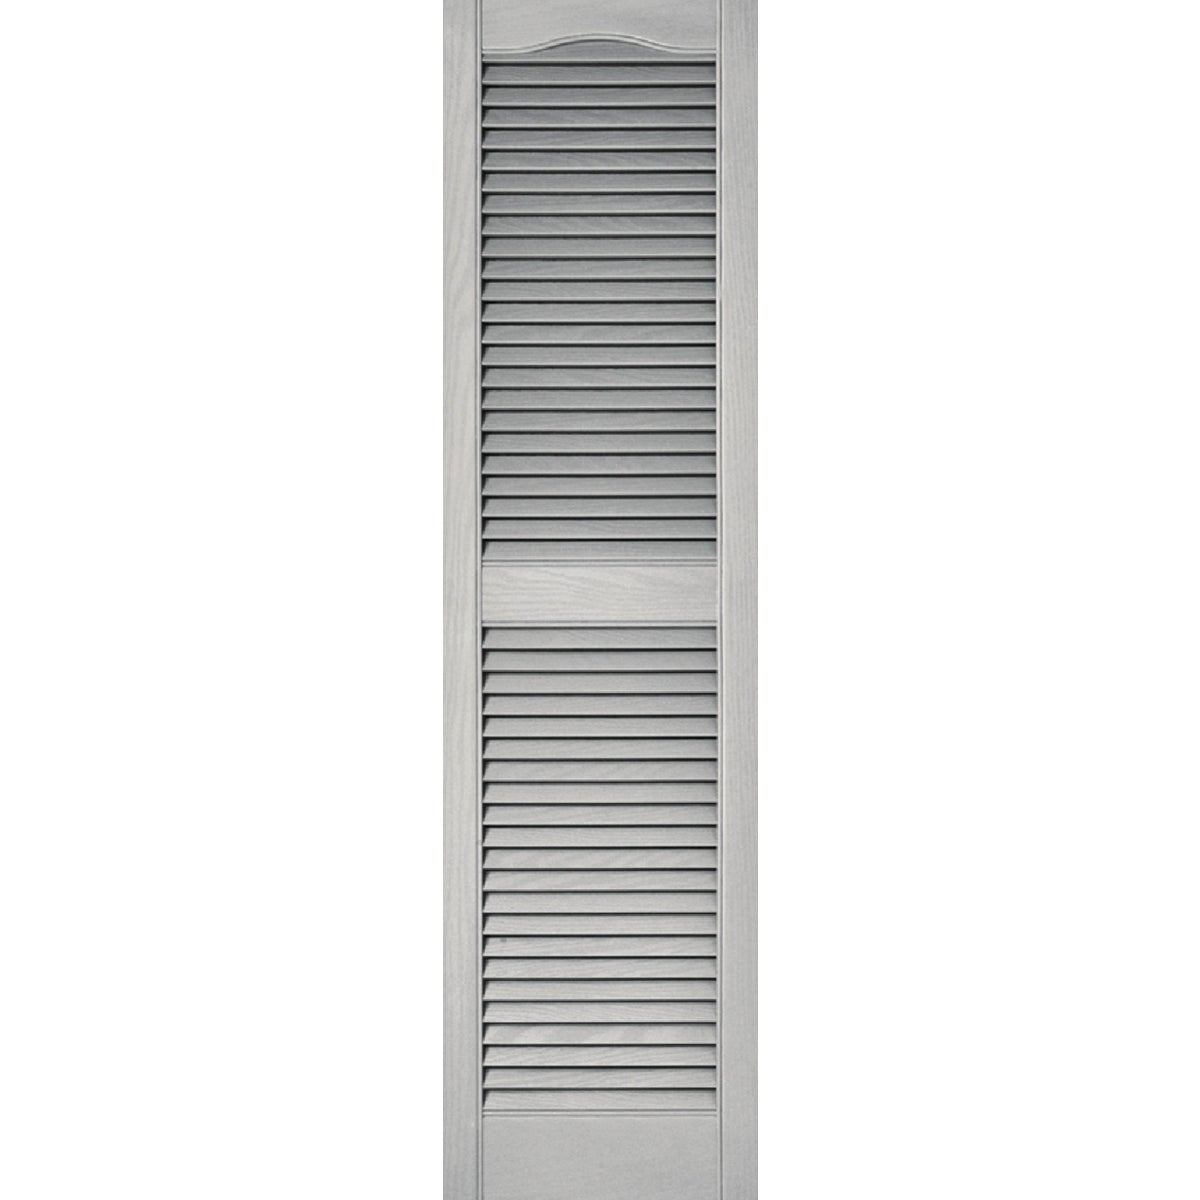 15X60 PBL LOUVER SHUTTER - 020140060030 by The Tapco Group